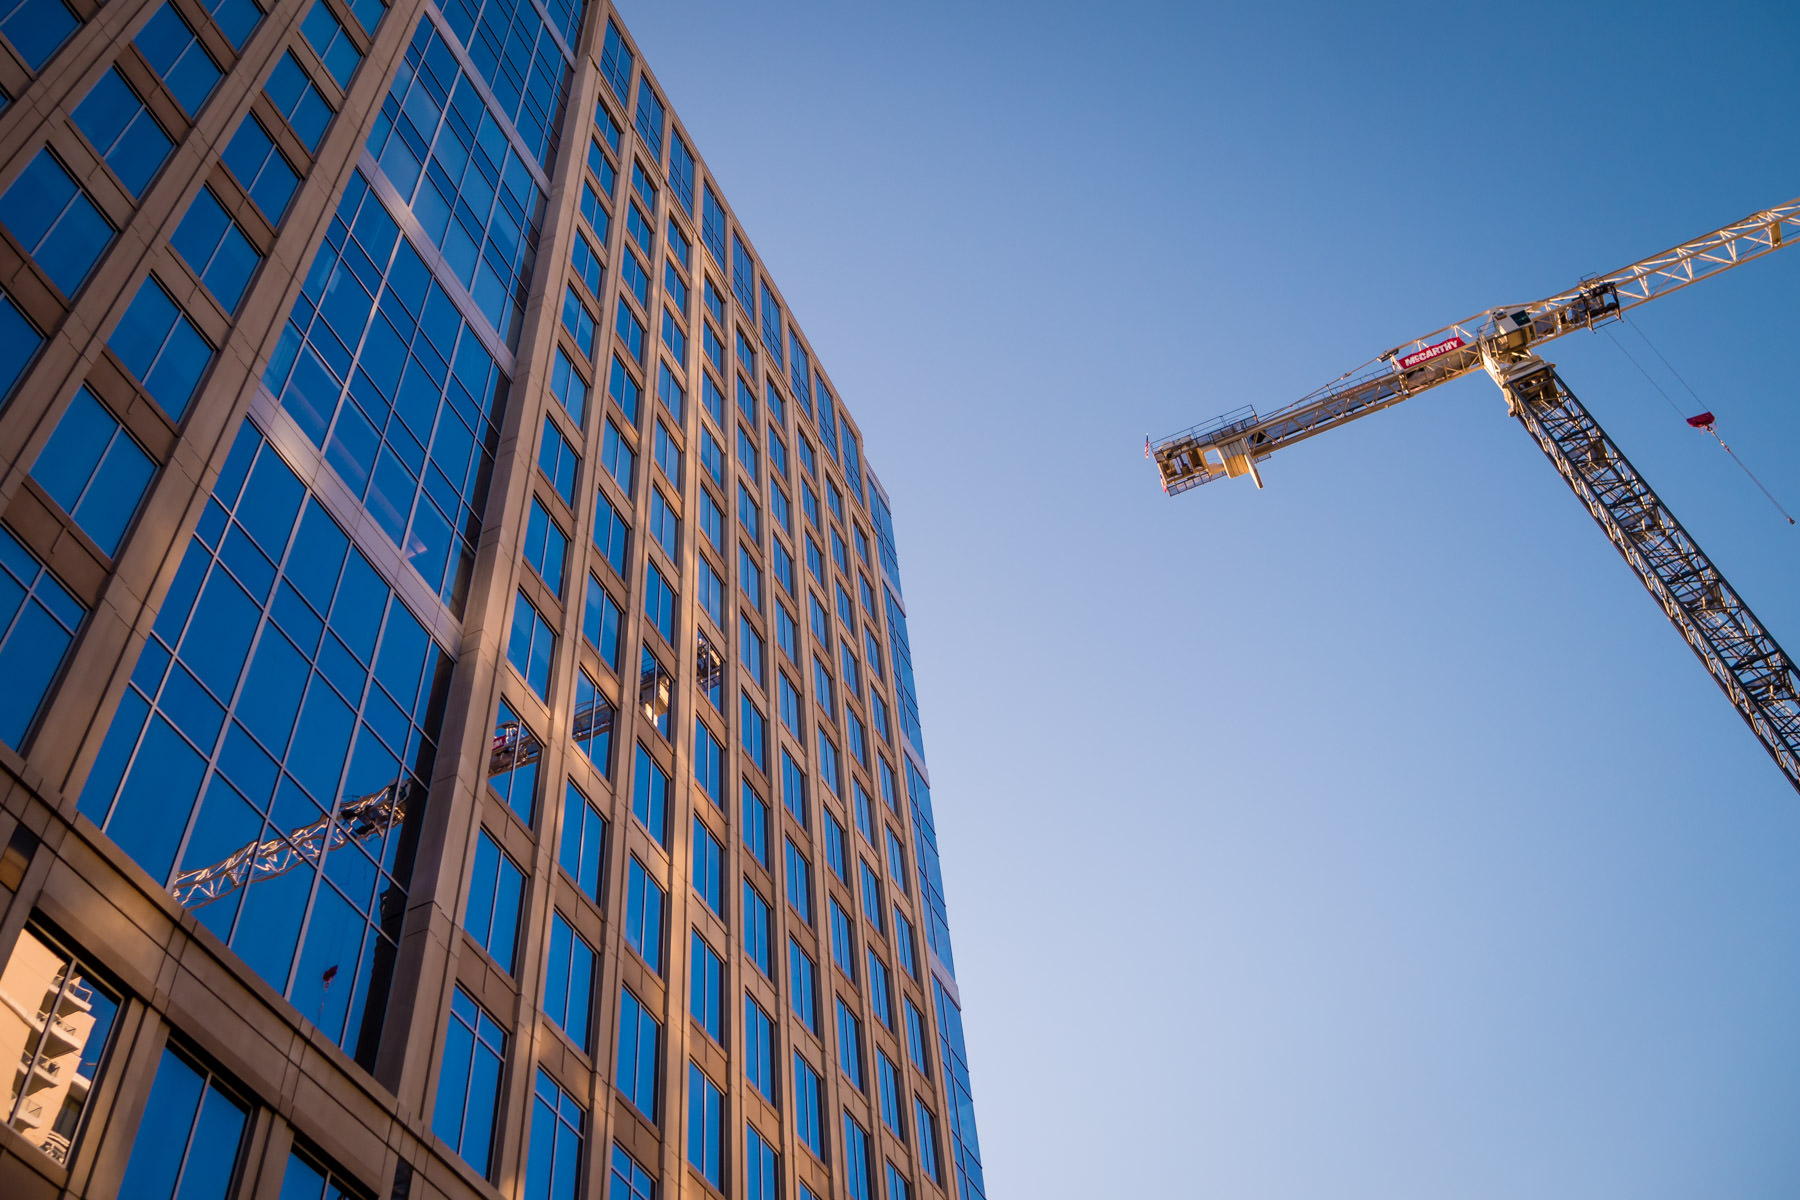 A tower crane is reflected in the glass façade of a nearby office building in Uptown Dallas.